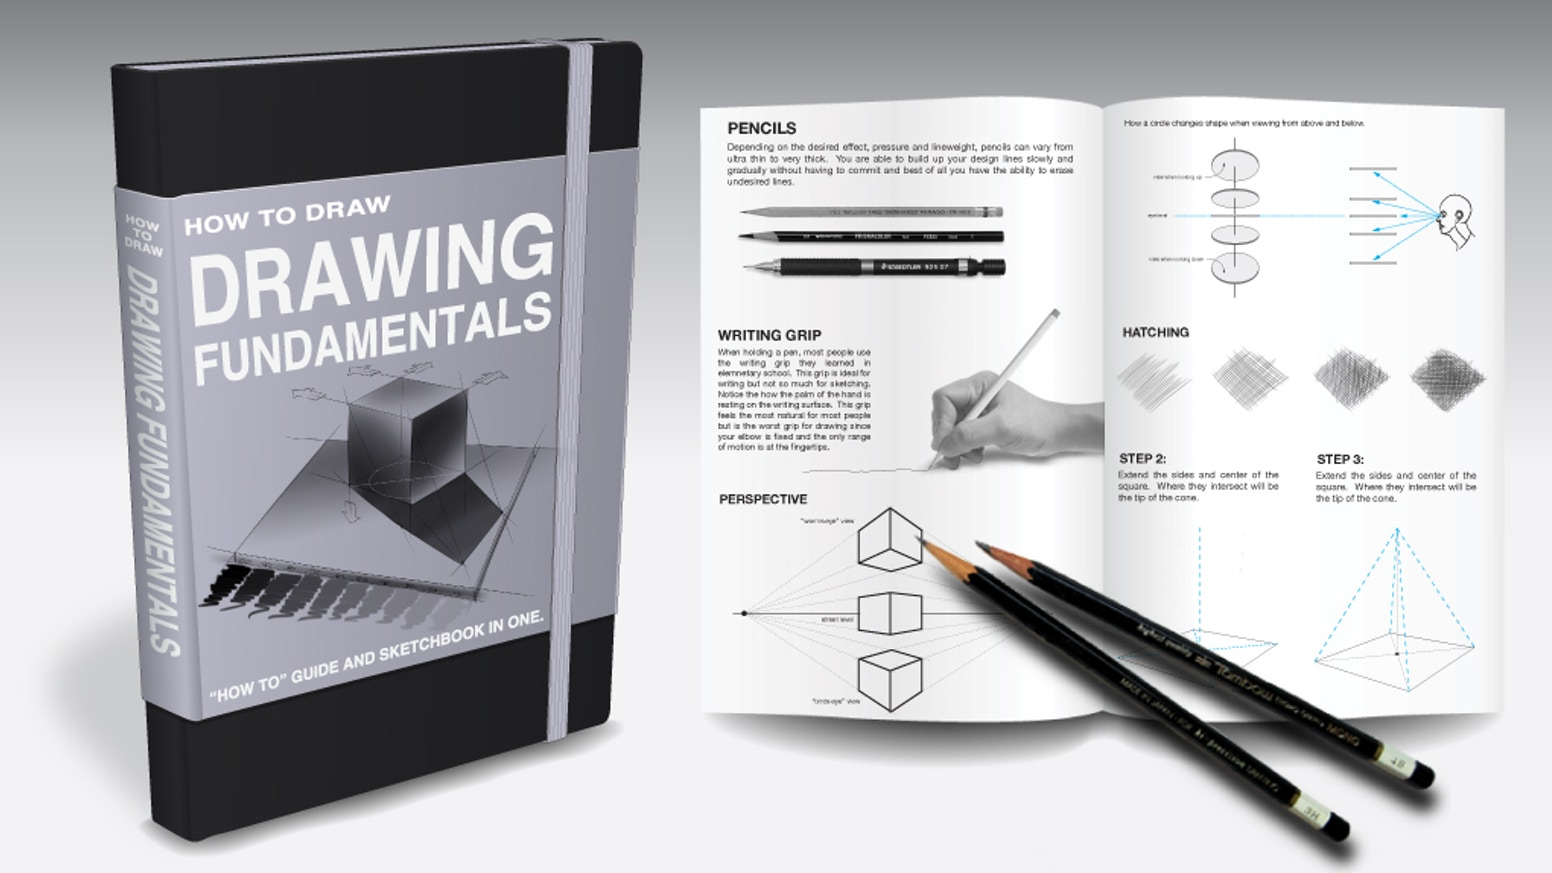 Learning to draw can be terrifying! This sketchbook alleviates that fear by providing simple instructions with templates to draw over.